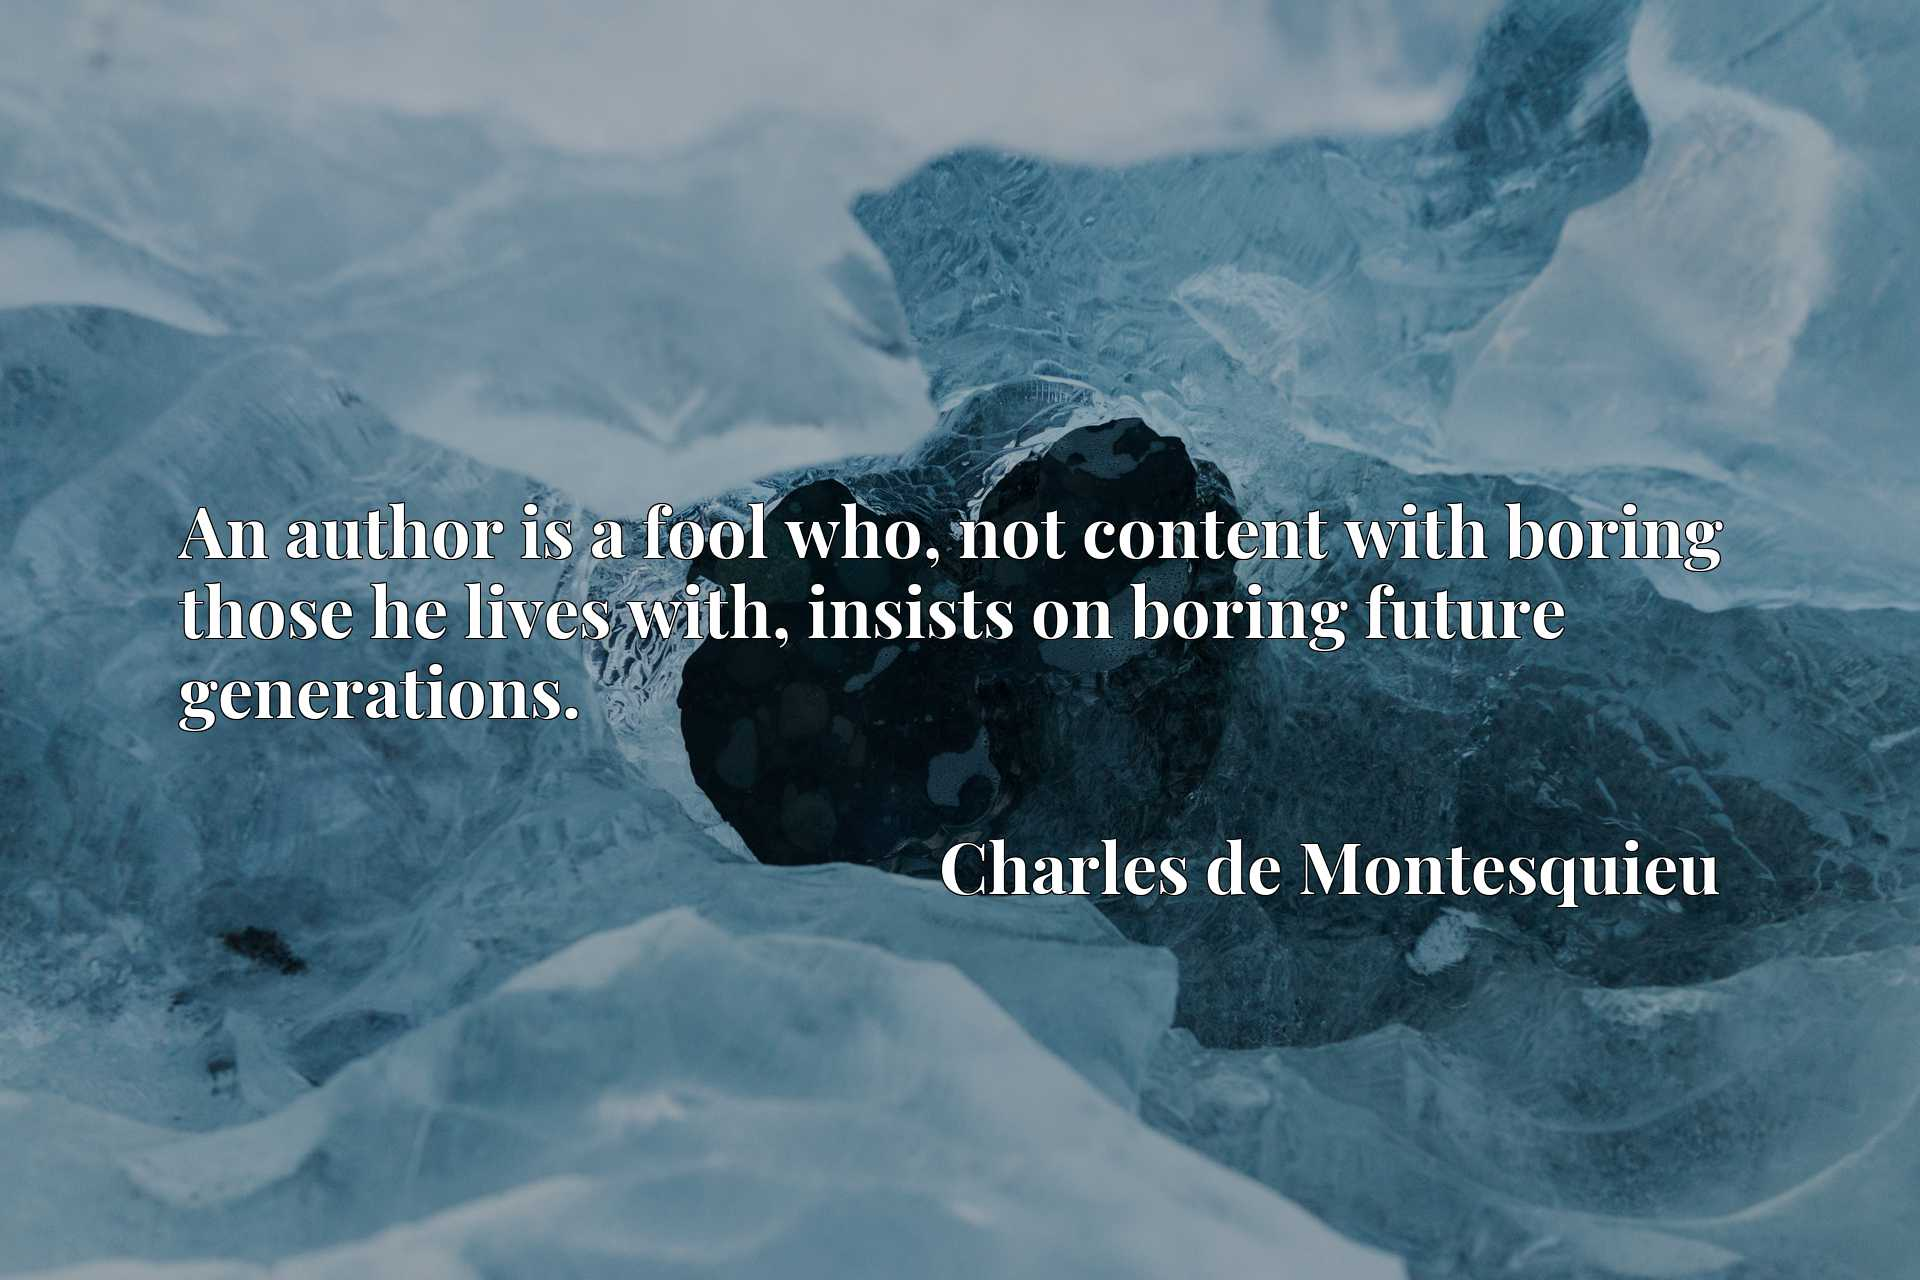 An author is a fool who, not content with boring those he lives with, insists on boring future generations.